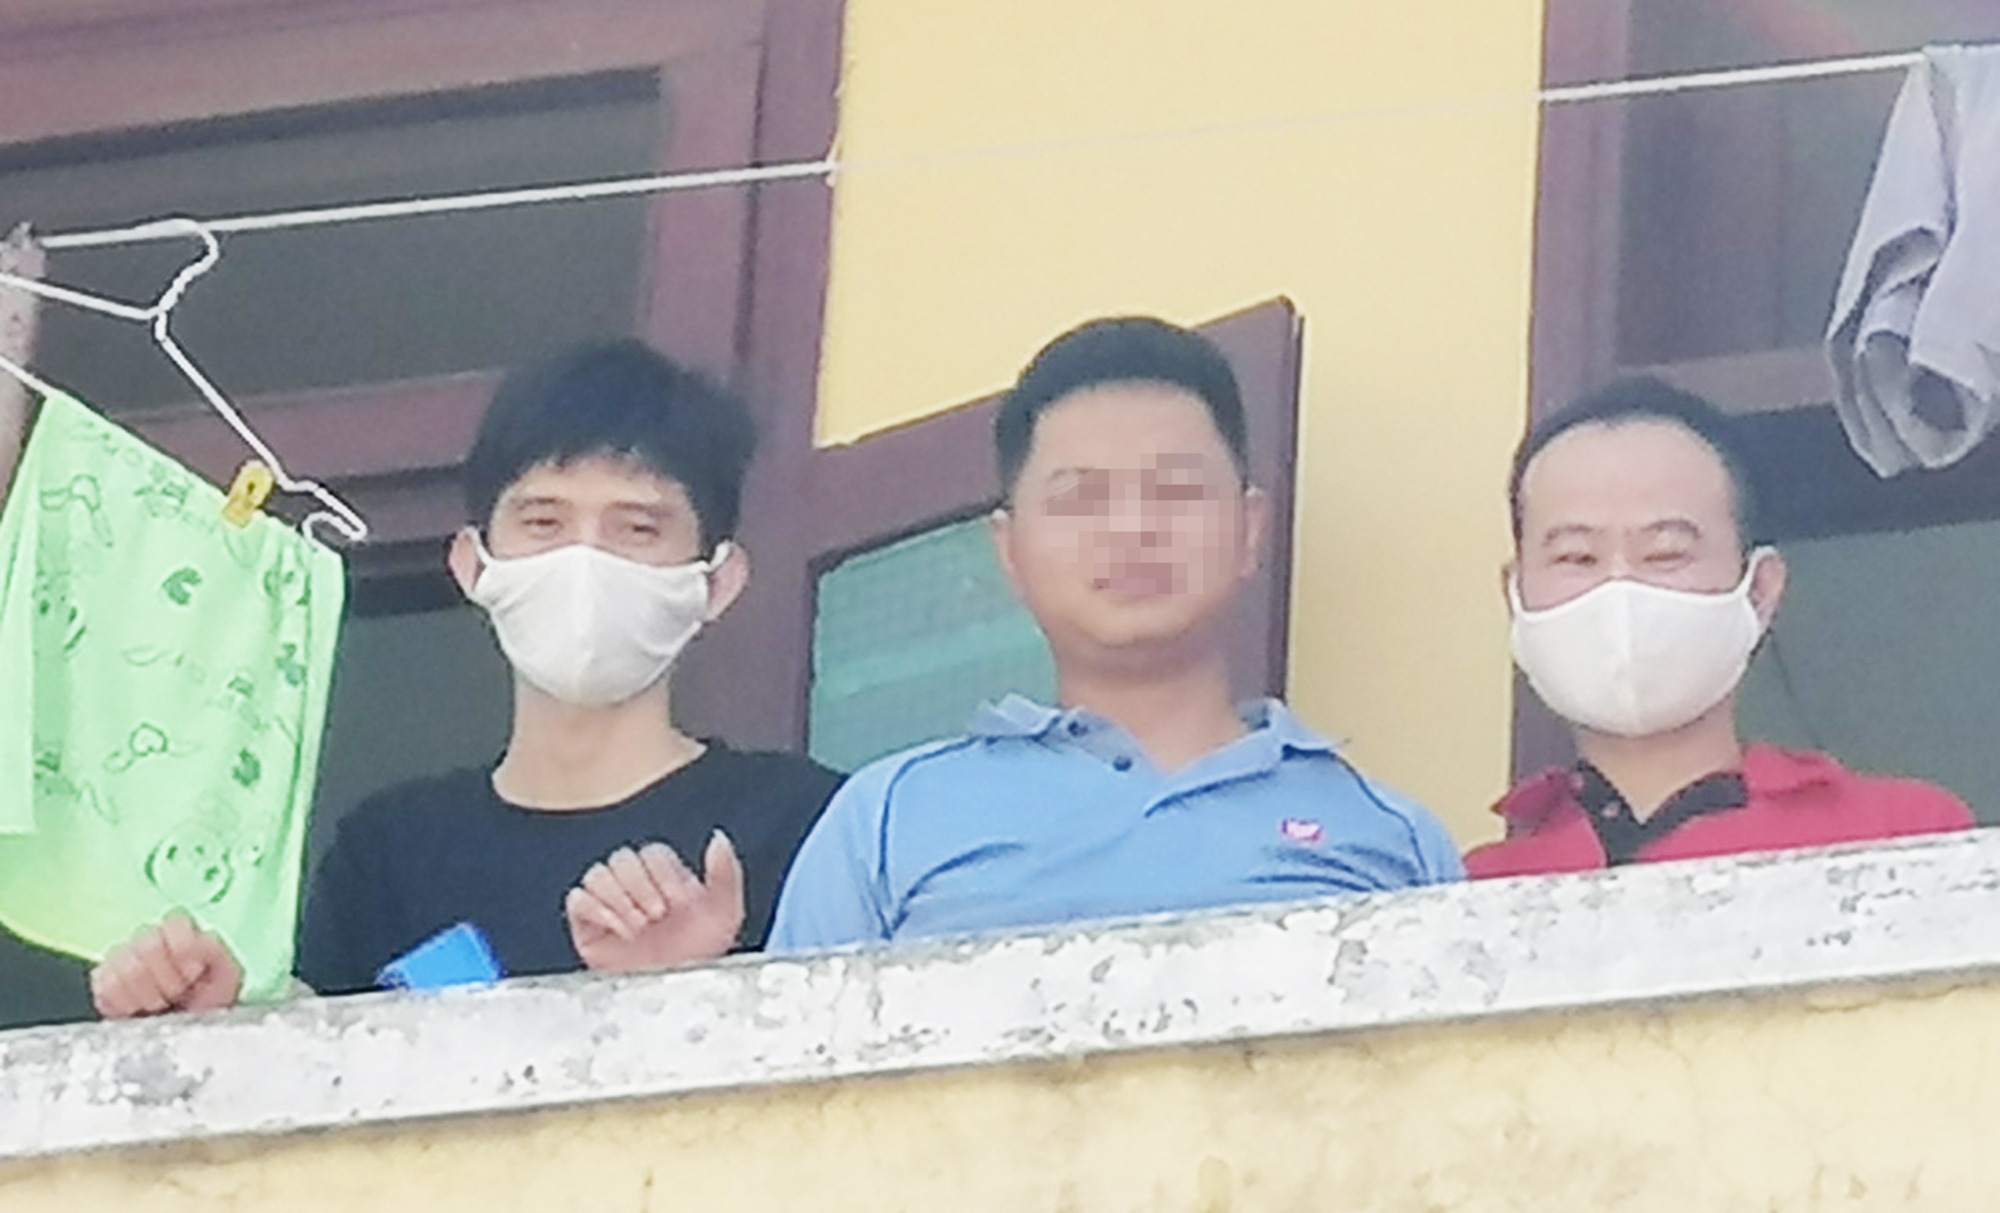 Three Chinese men are pictured inside a quarantine camp in Quang Nam Province, Vietnam, July 20, 2020. Photo: L.T. / Tuoi Tre